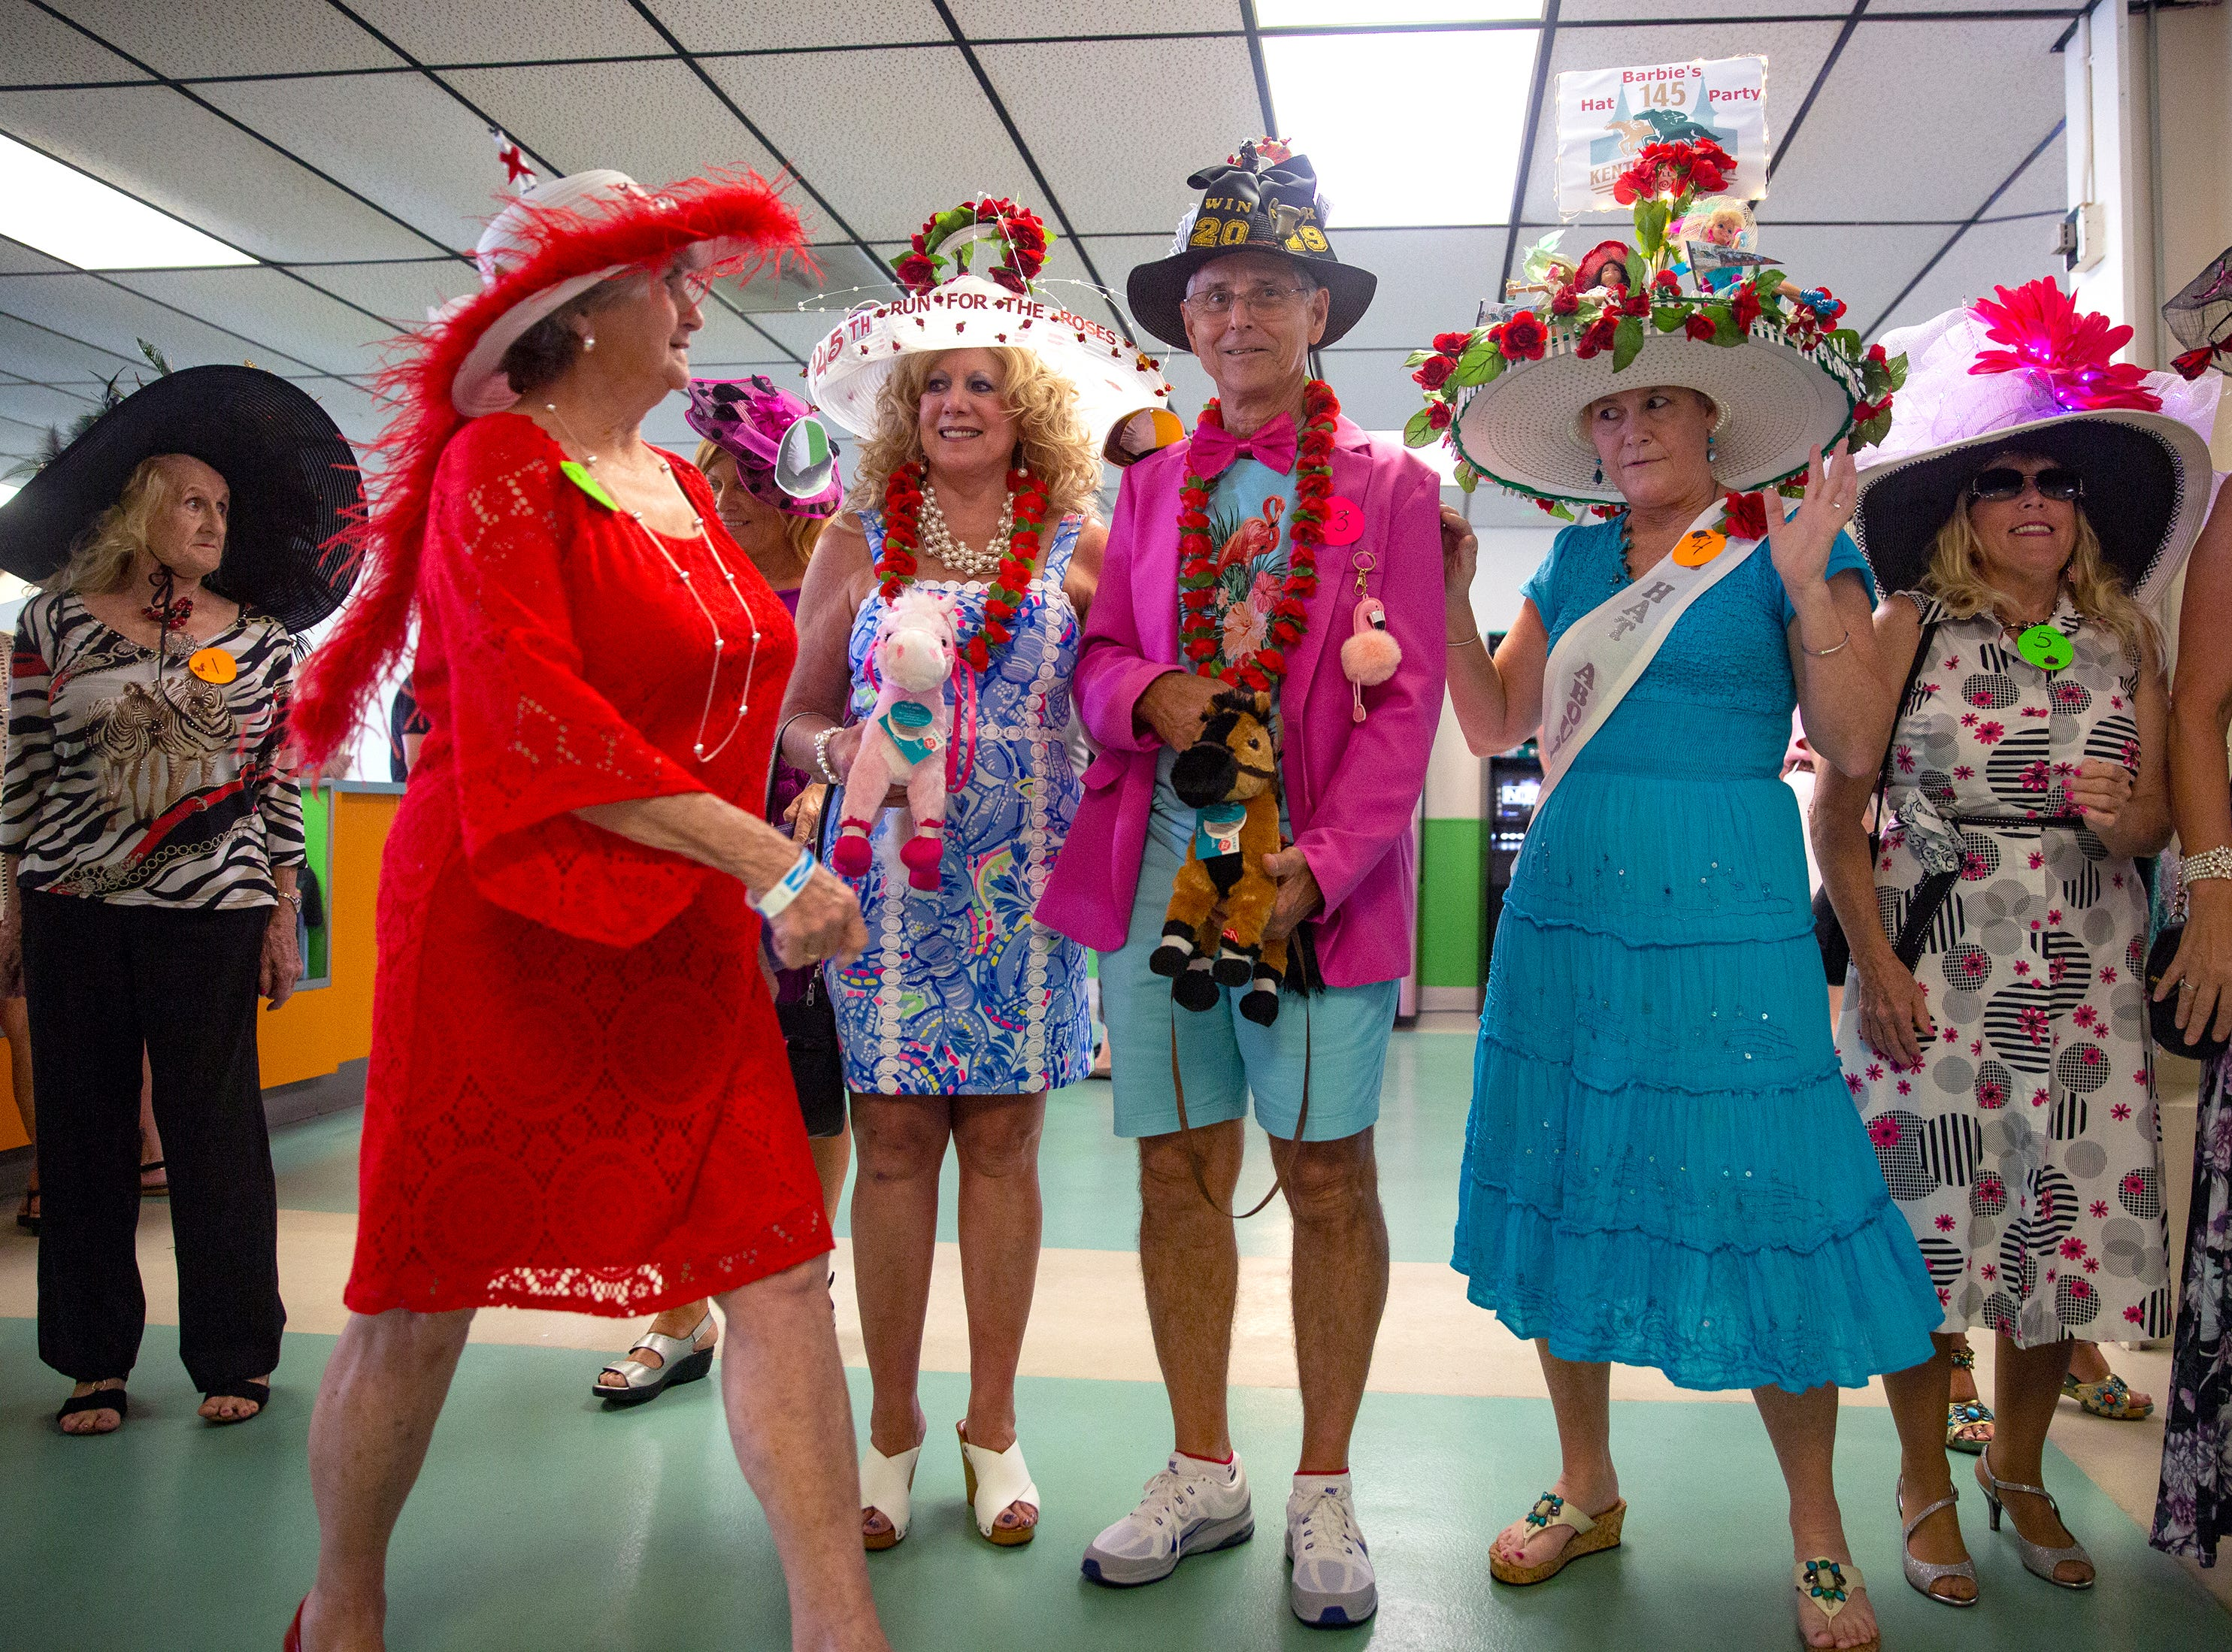 Contestants in the Best Derby Hat competition prepare to be judged during the annual  Best Derby Hat competition, Saturday, May 4, 2019, at Naples Fort Myers Greyhound Racing and Poker in Bonita Springs.